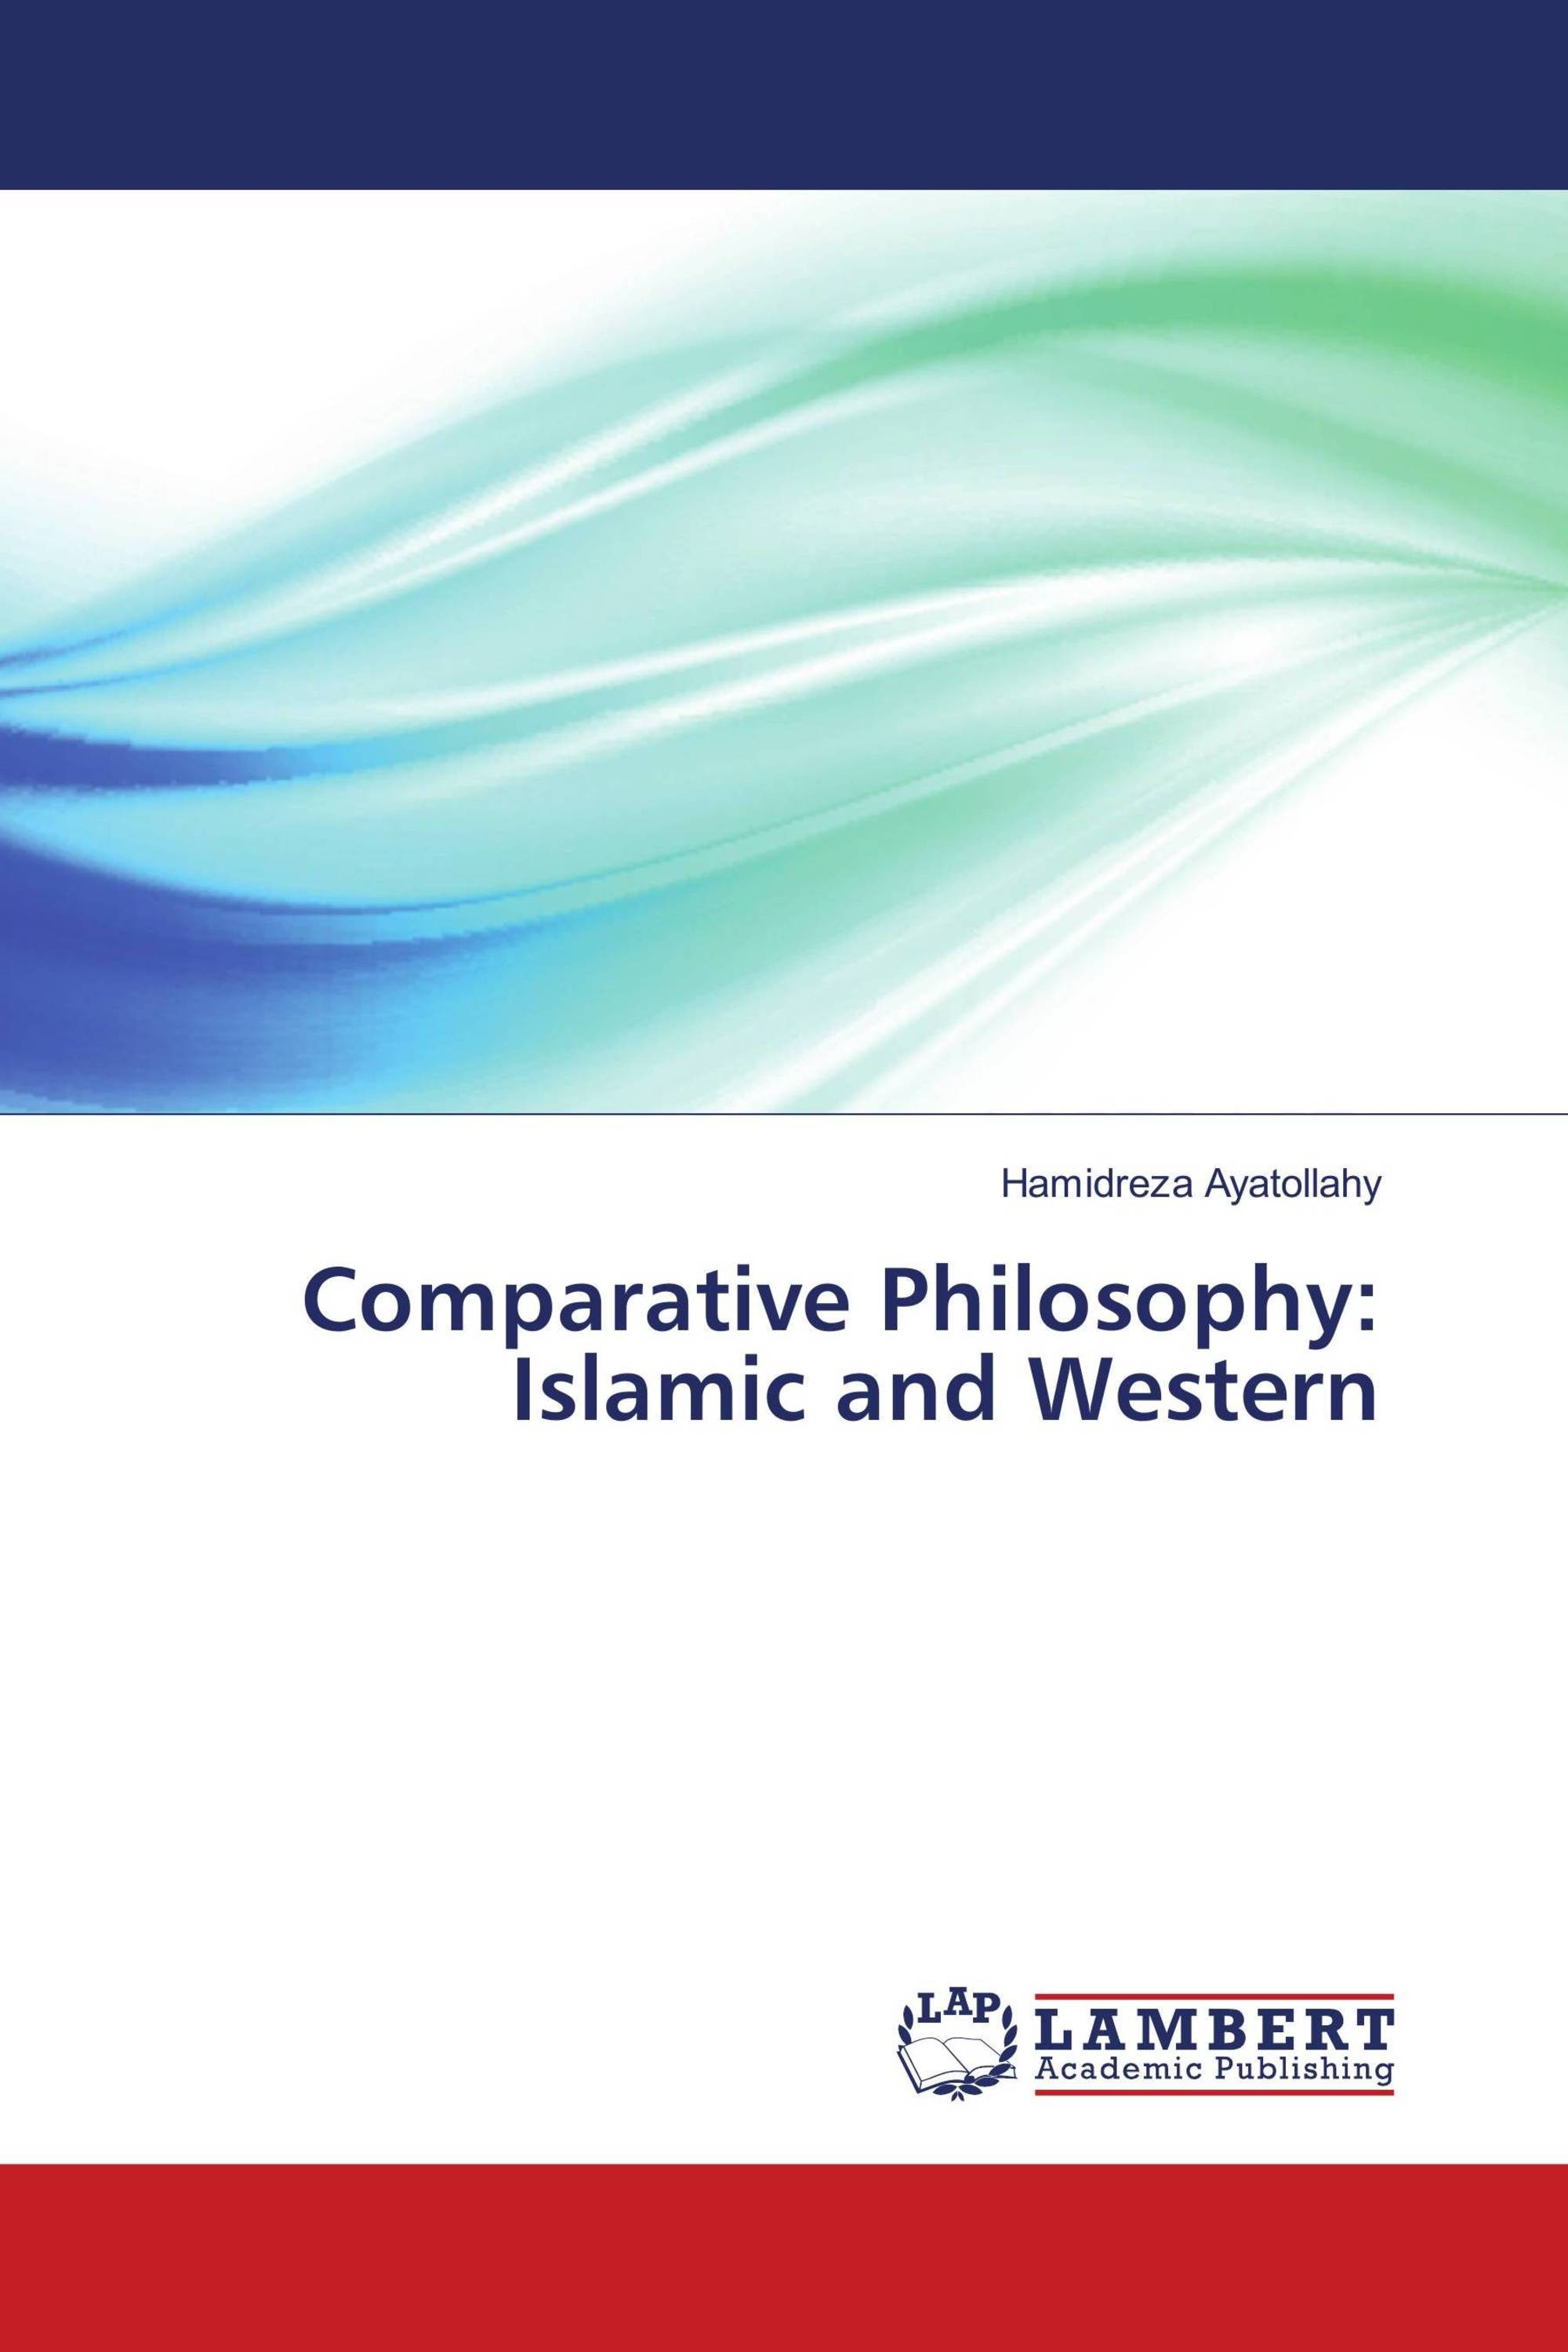 Comparative Philosophy: Islamic and Western